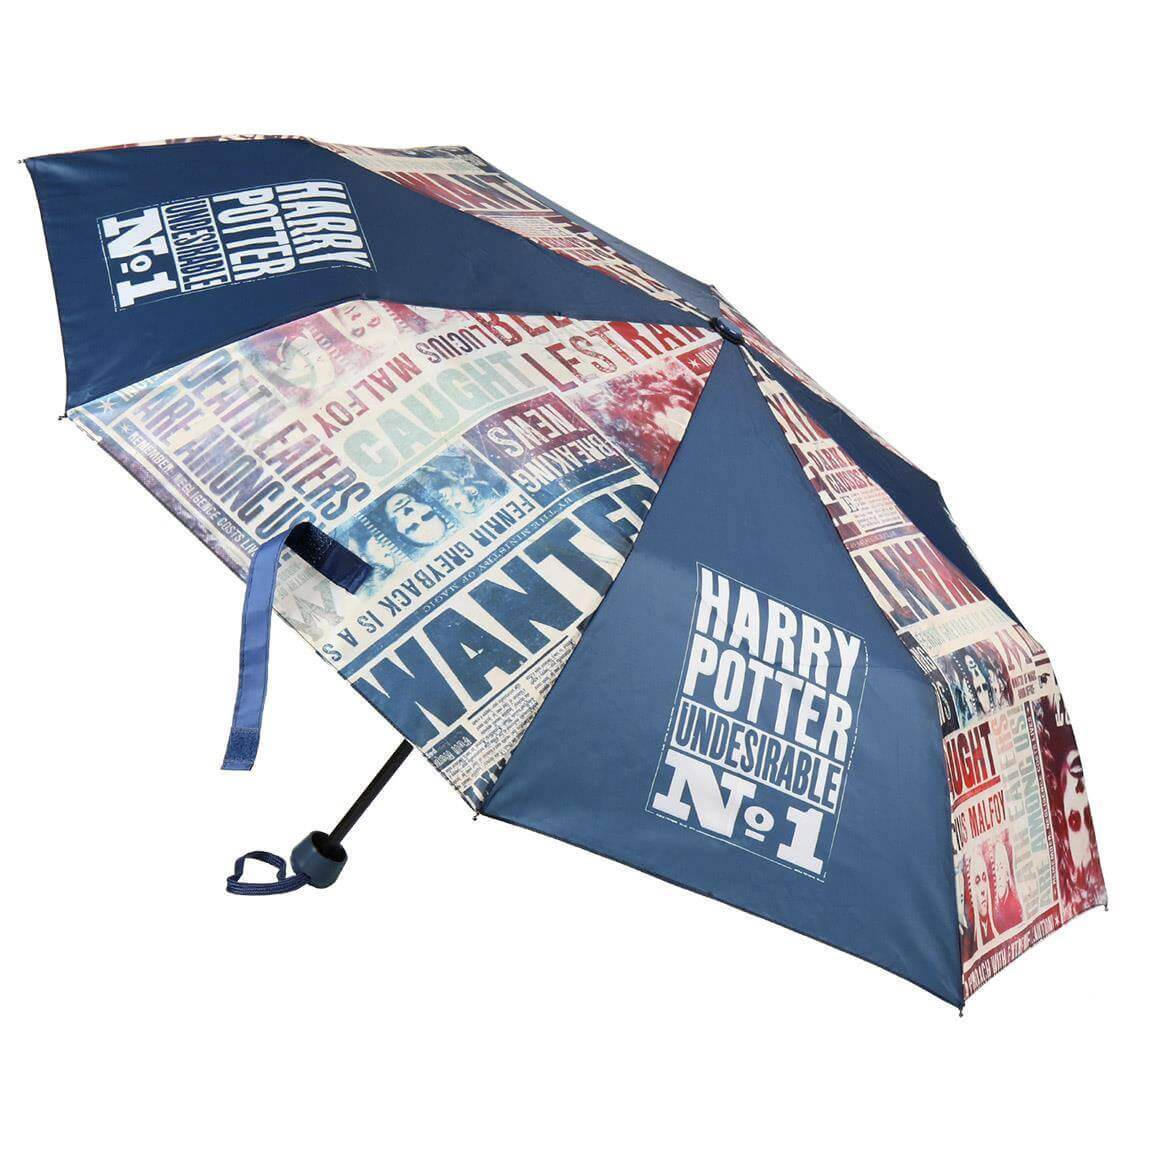 PARAPLUIE UNDESIRABLE N°1 - HARRY POTTER - la boutique du sorcier